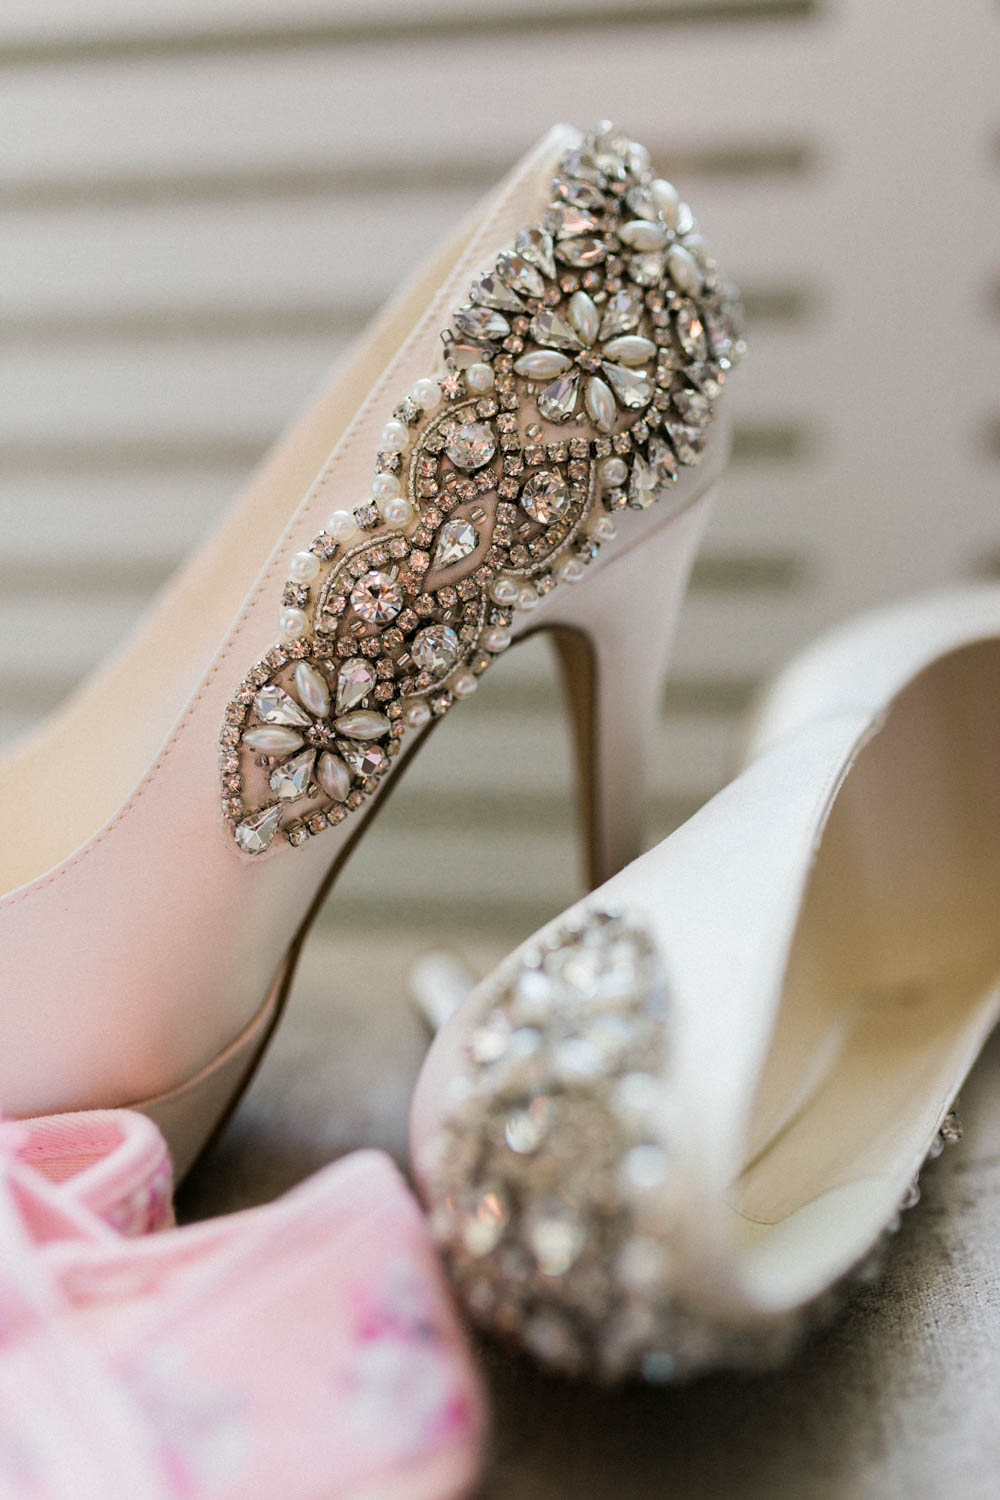 Special-Day-Photography-Manor-By-The-Lake-Cheltenham-Cheltenham-Manor-Wedding-wedding-shoe-details.jpg